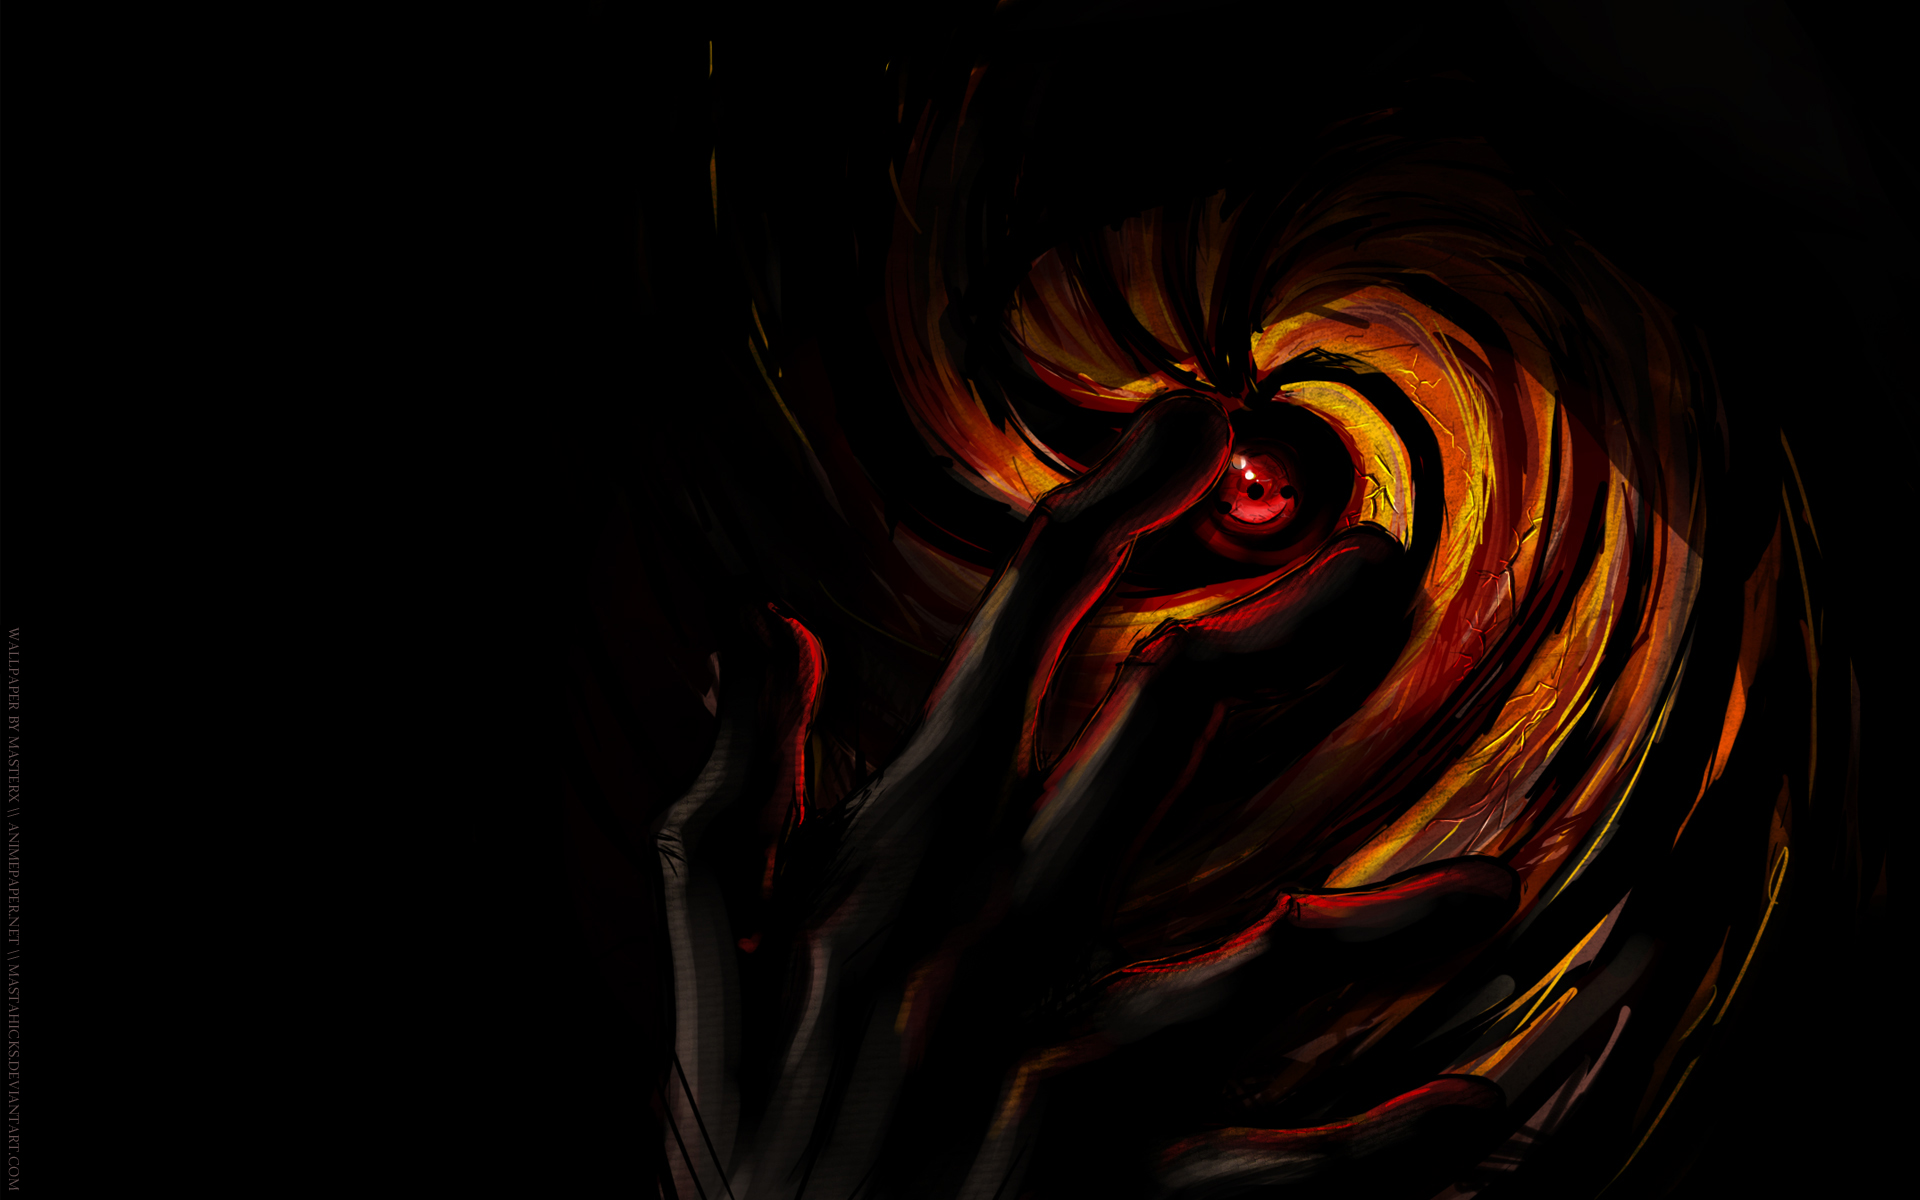 157 obito uchiha hd wallpapers backgrounds wallpaper abyss